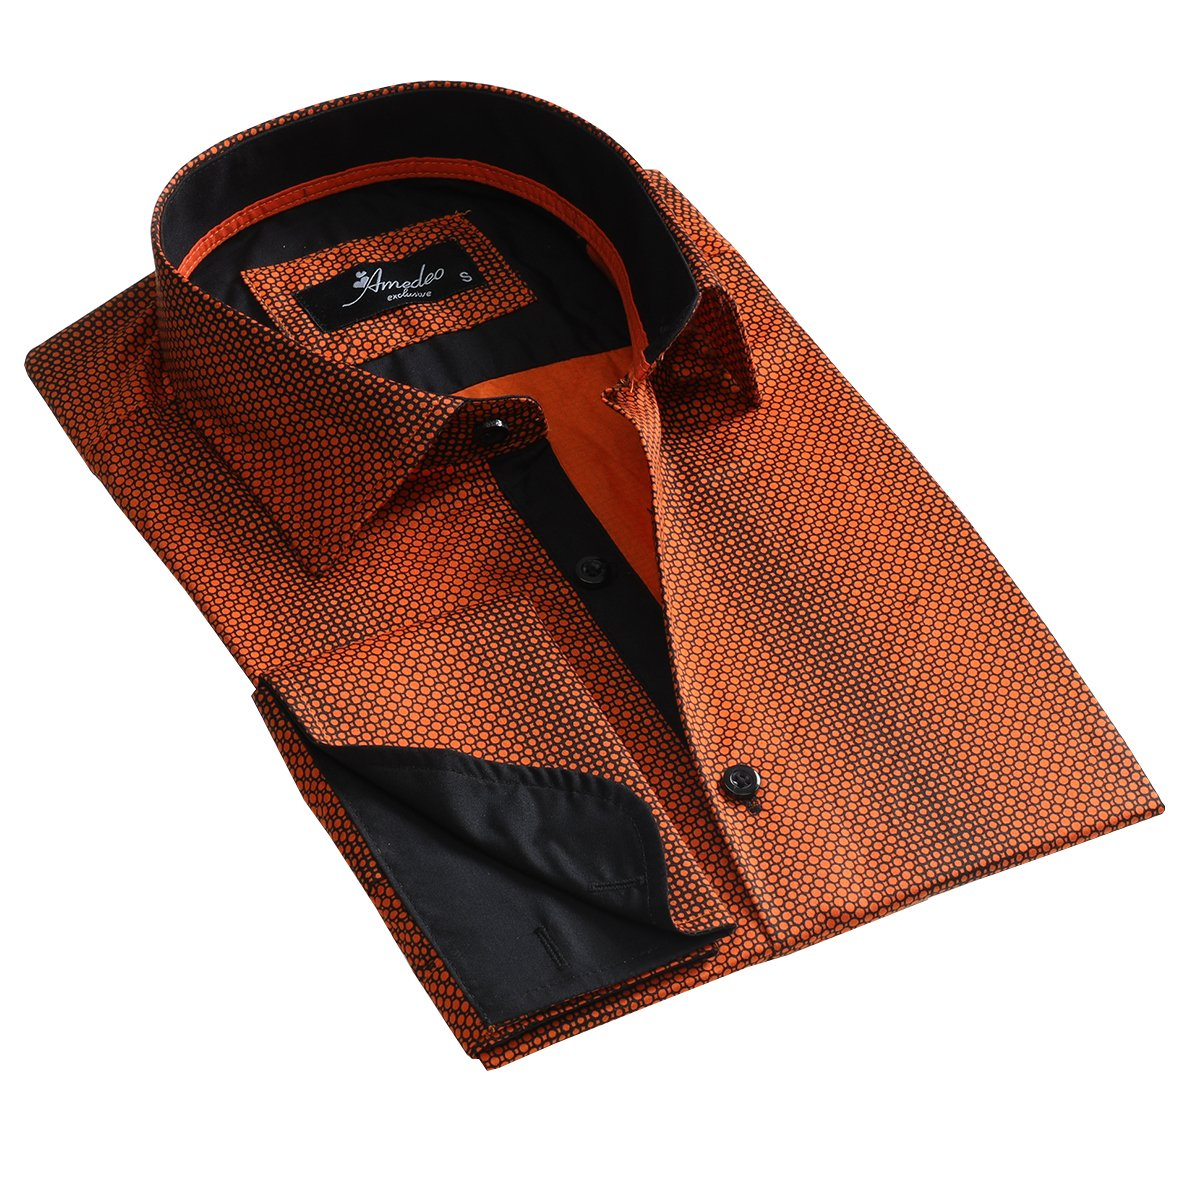 Orange Design Men's Reversible Dress Shirt, Button Down Slim Fit with French Cuff Casual and Formal - Amedeo Exclusive